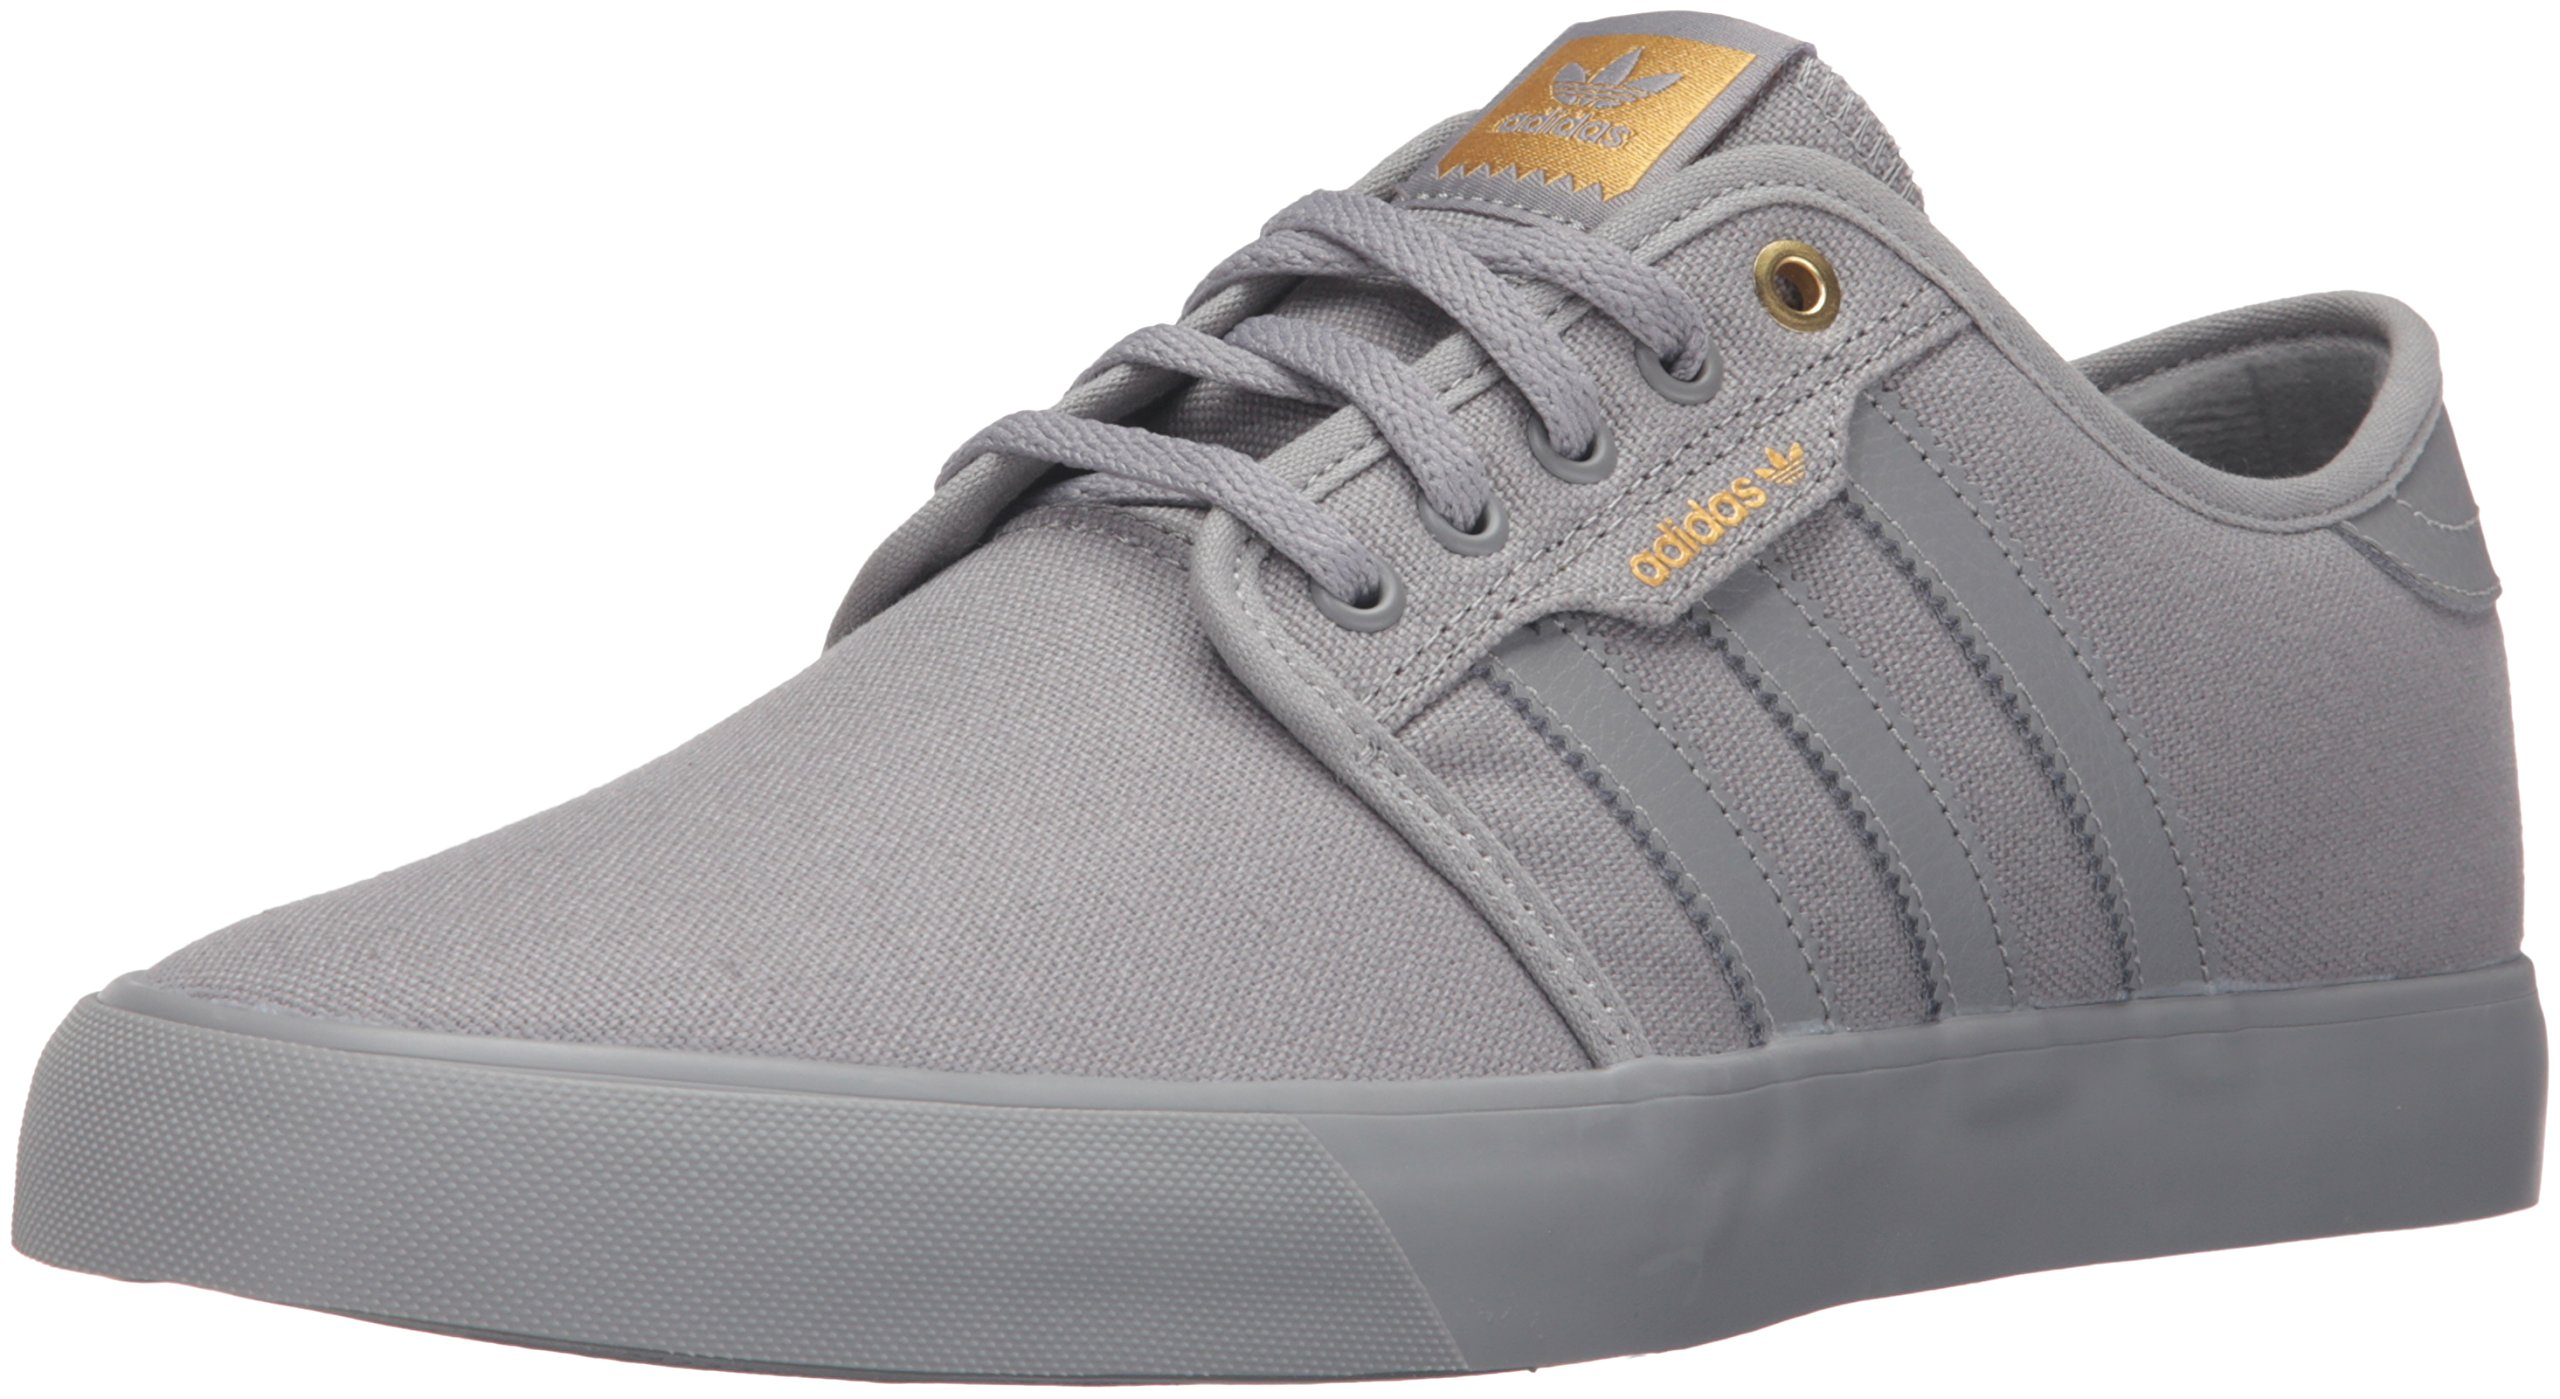 new photos b1957 55bd0 Galleon - Adidas Originals Men s Seeley Skate Shoe,Ash  Grey White Black,11.5 M US